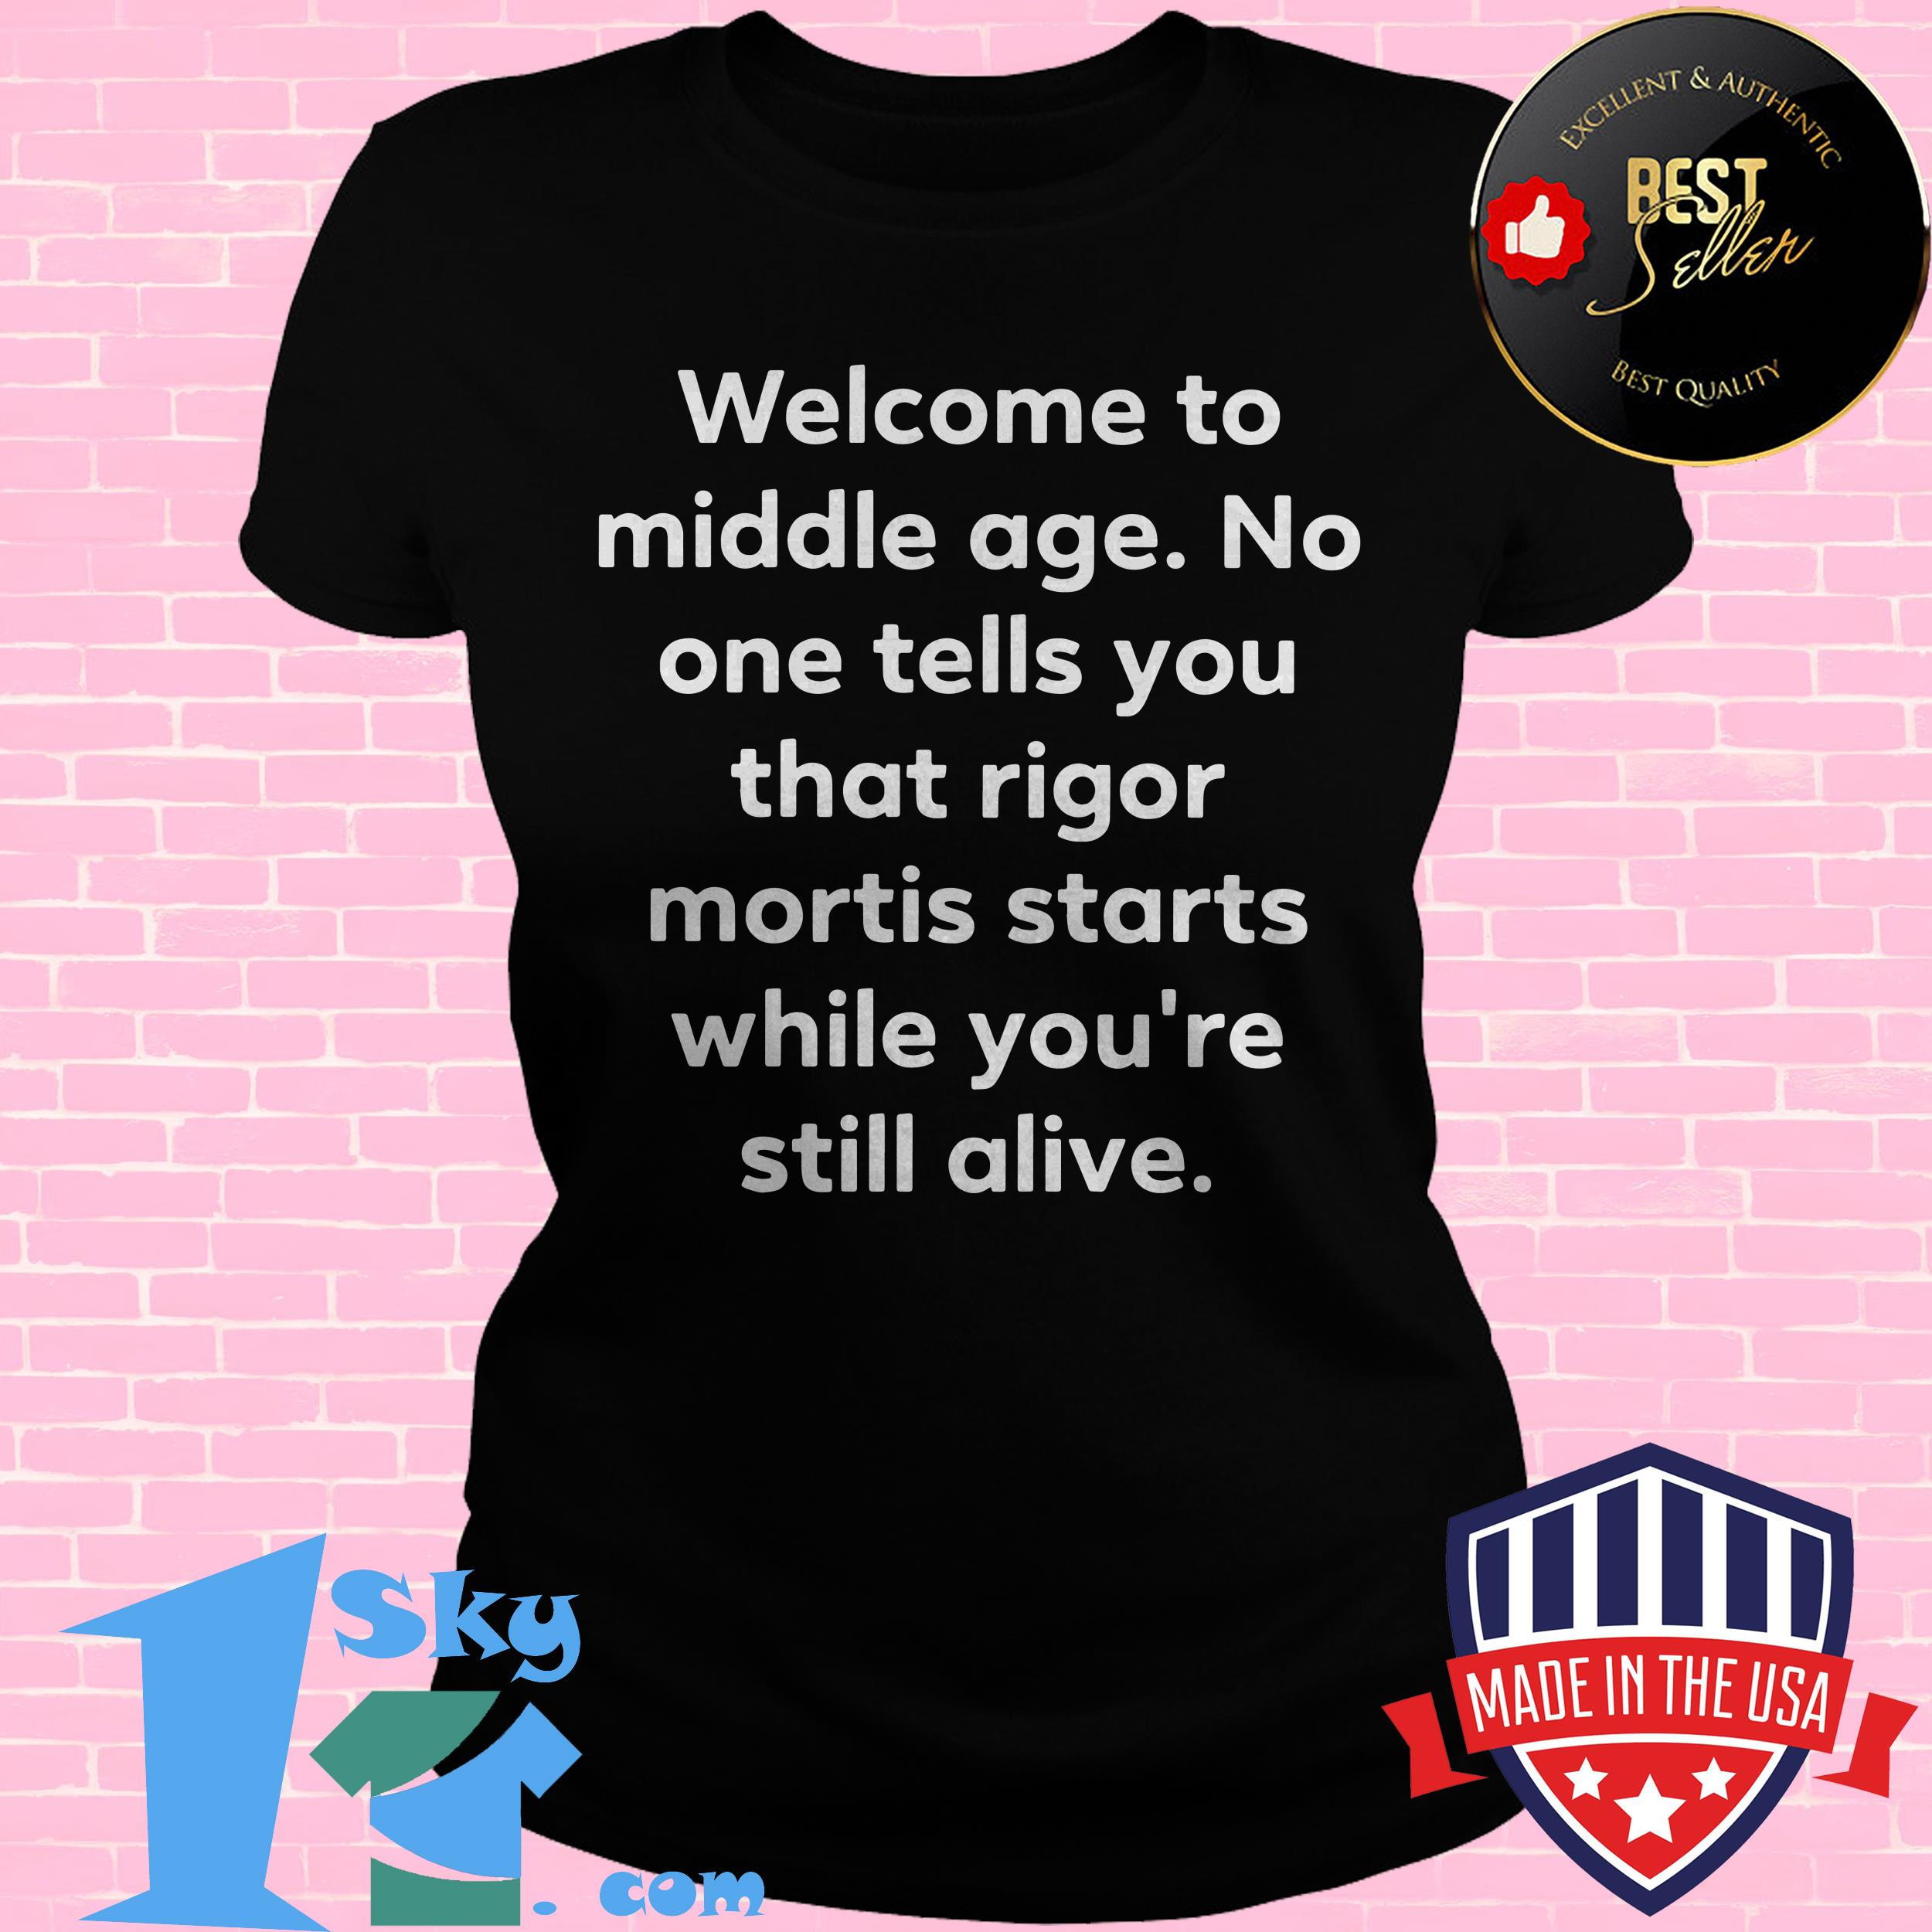 welcome to middle age no one tells you that rigor mortis starts while youre still alive ladies tee - Welcome to Middle Age No One Tells You That Rigor Mortis Starts While You're Still Alive shirt